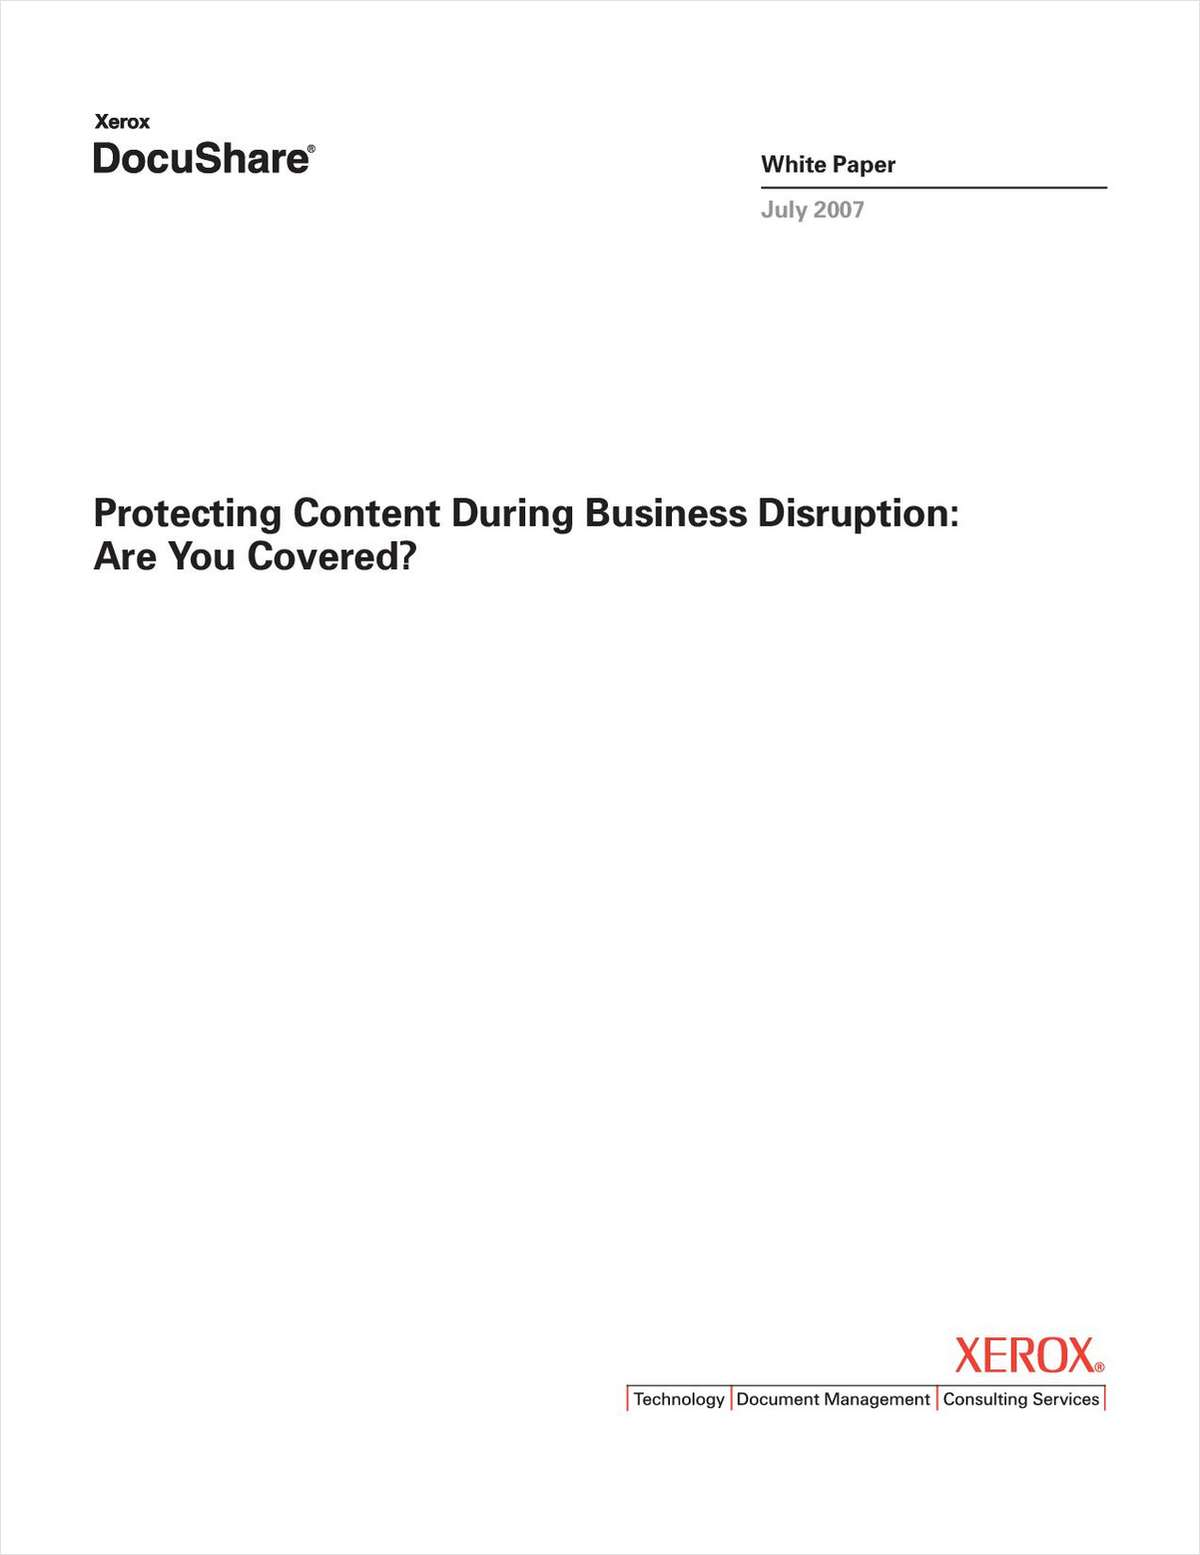 Protecting Content During Business Disruption: Are You Covered?